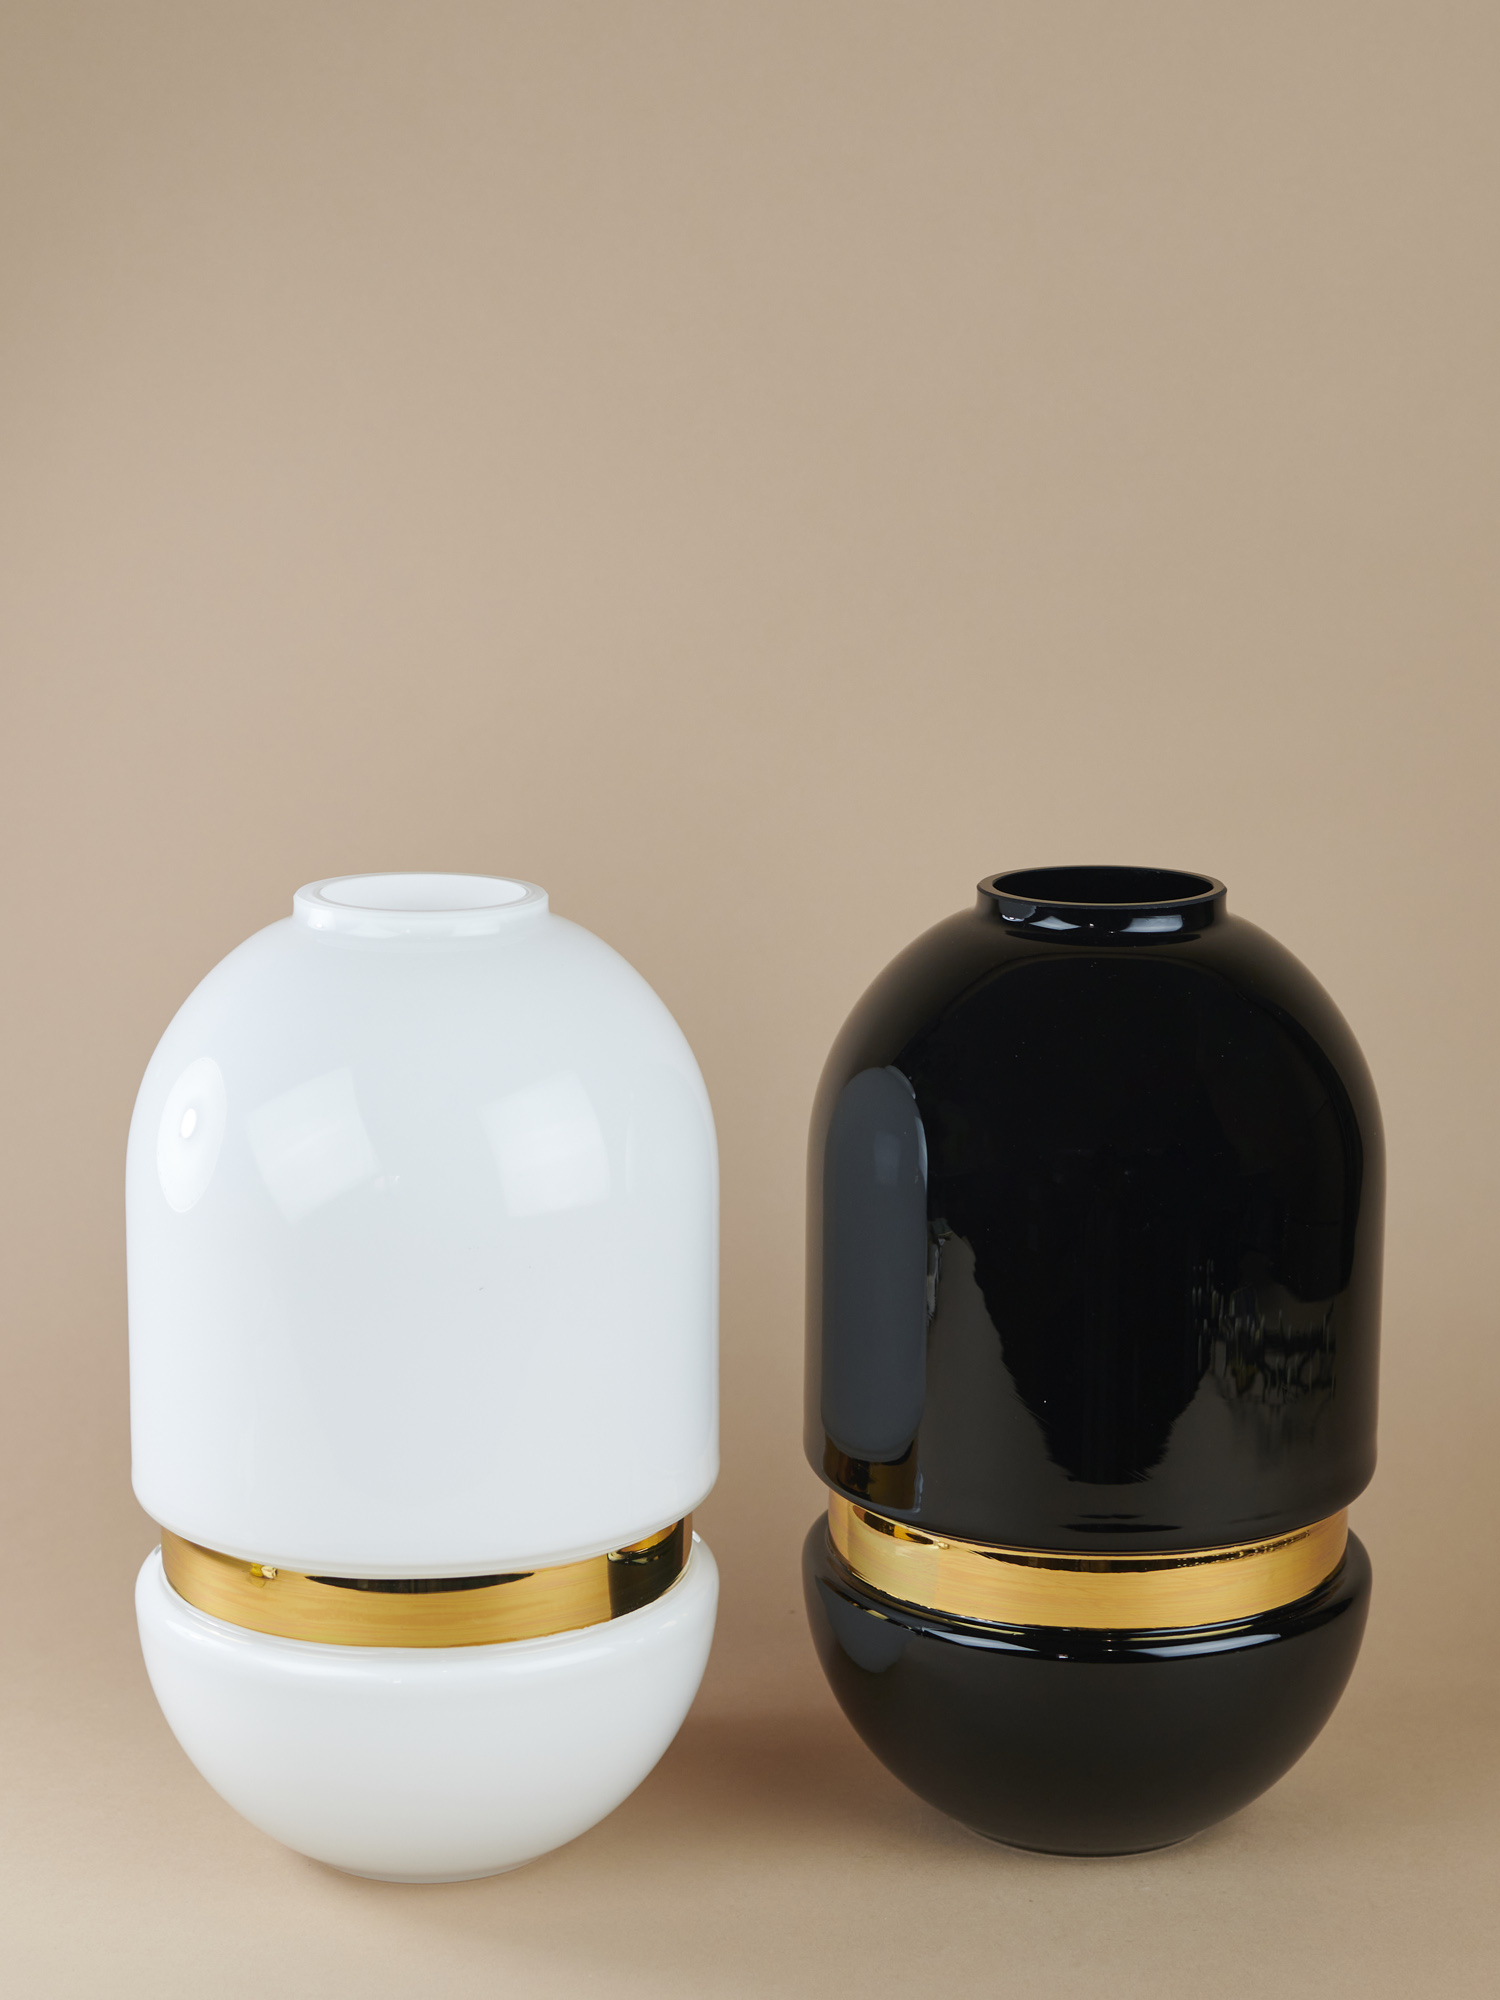 Black and white glass vases with golden stripe in the middle by Pavel Vytisk